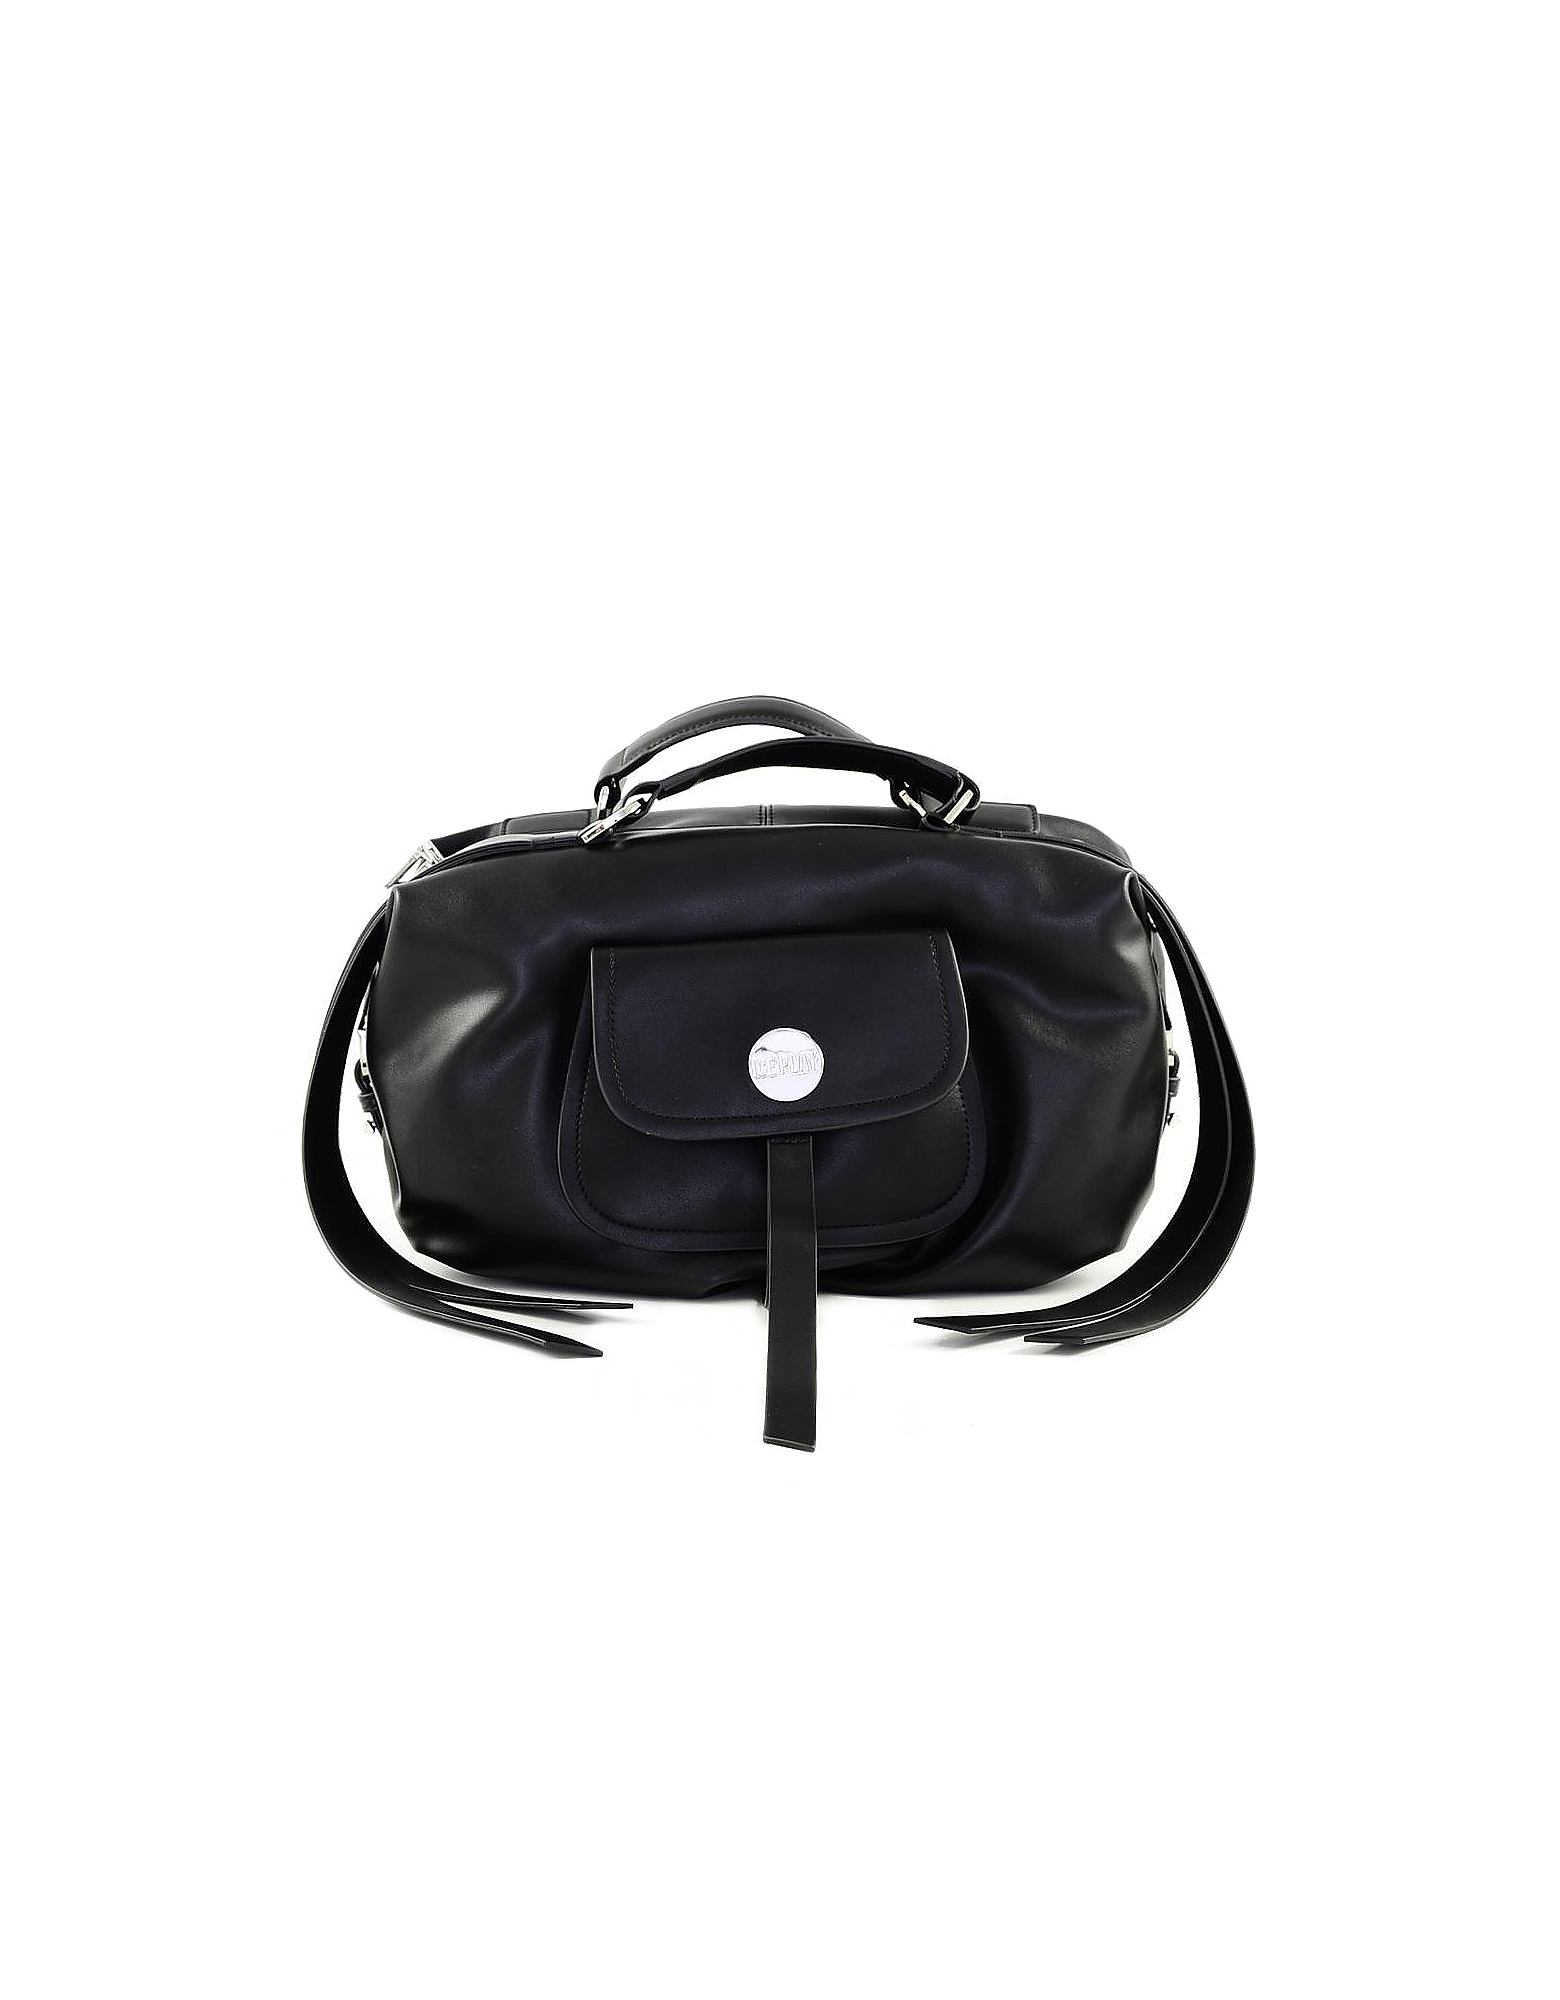 Ice Play Designer Handbags, Black Front Zip Tote